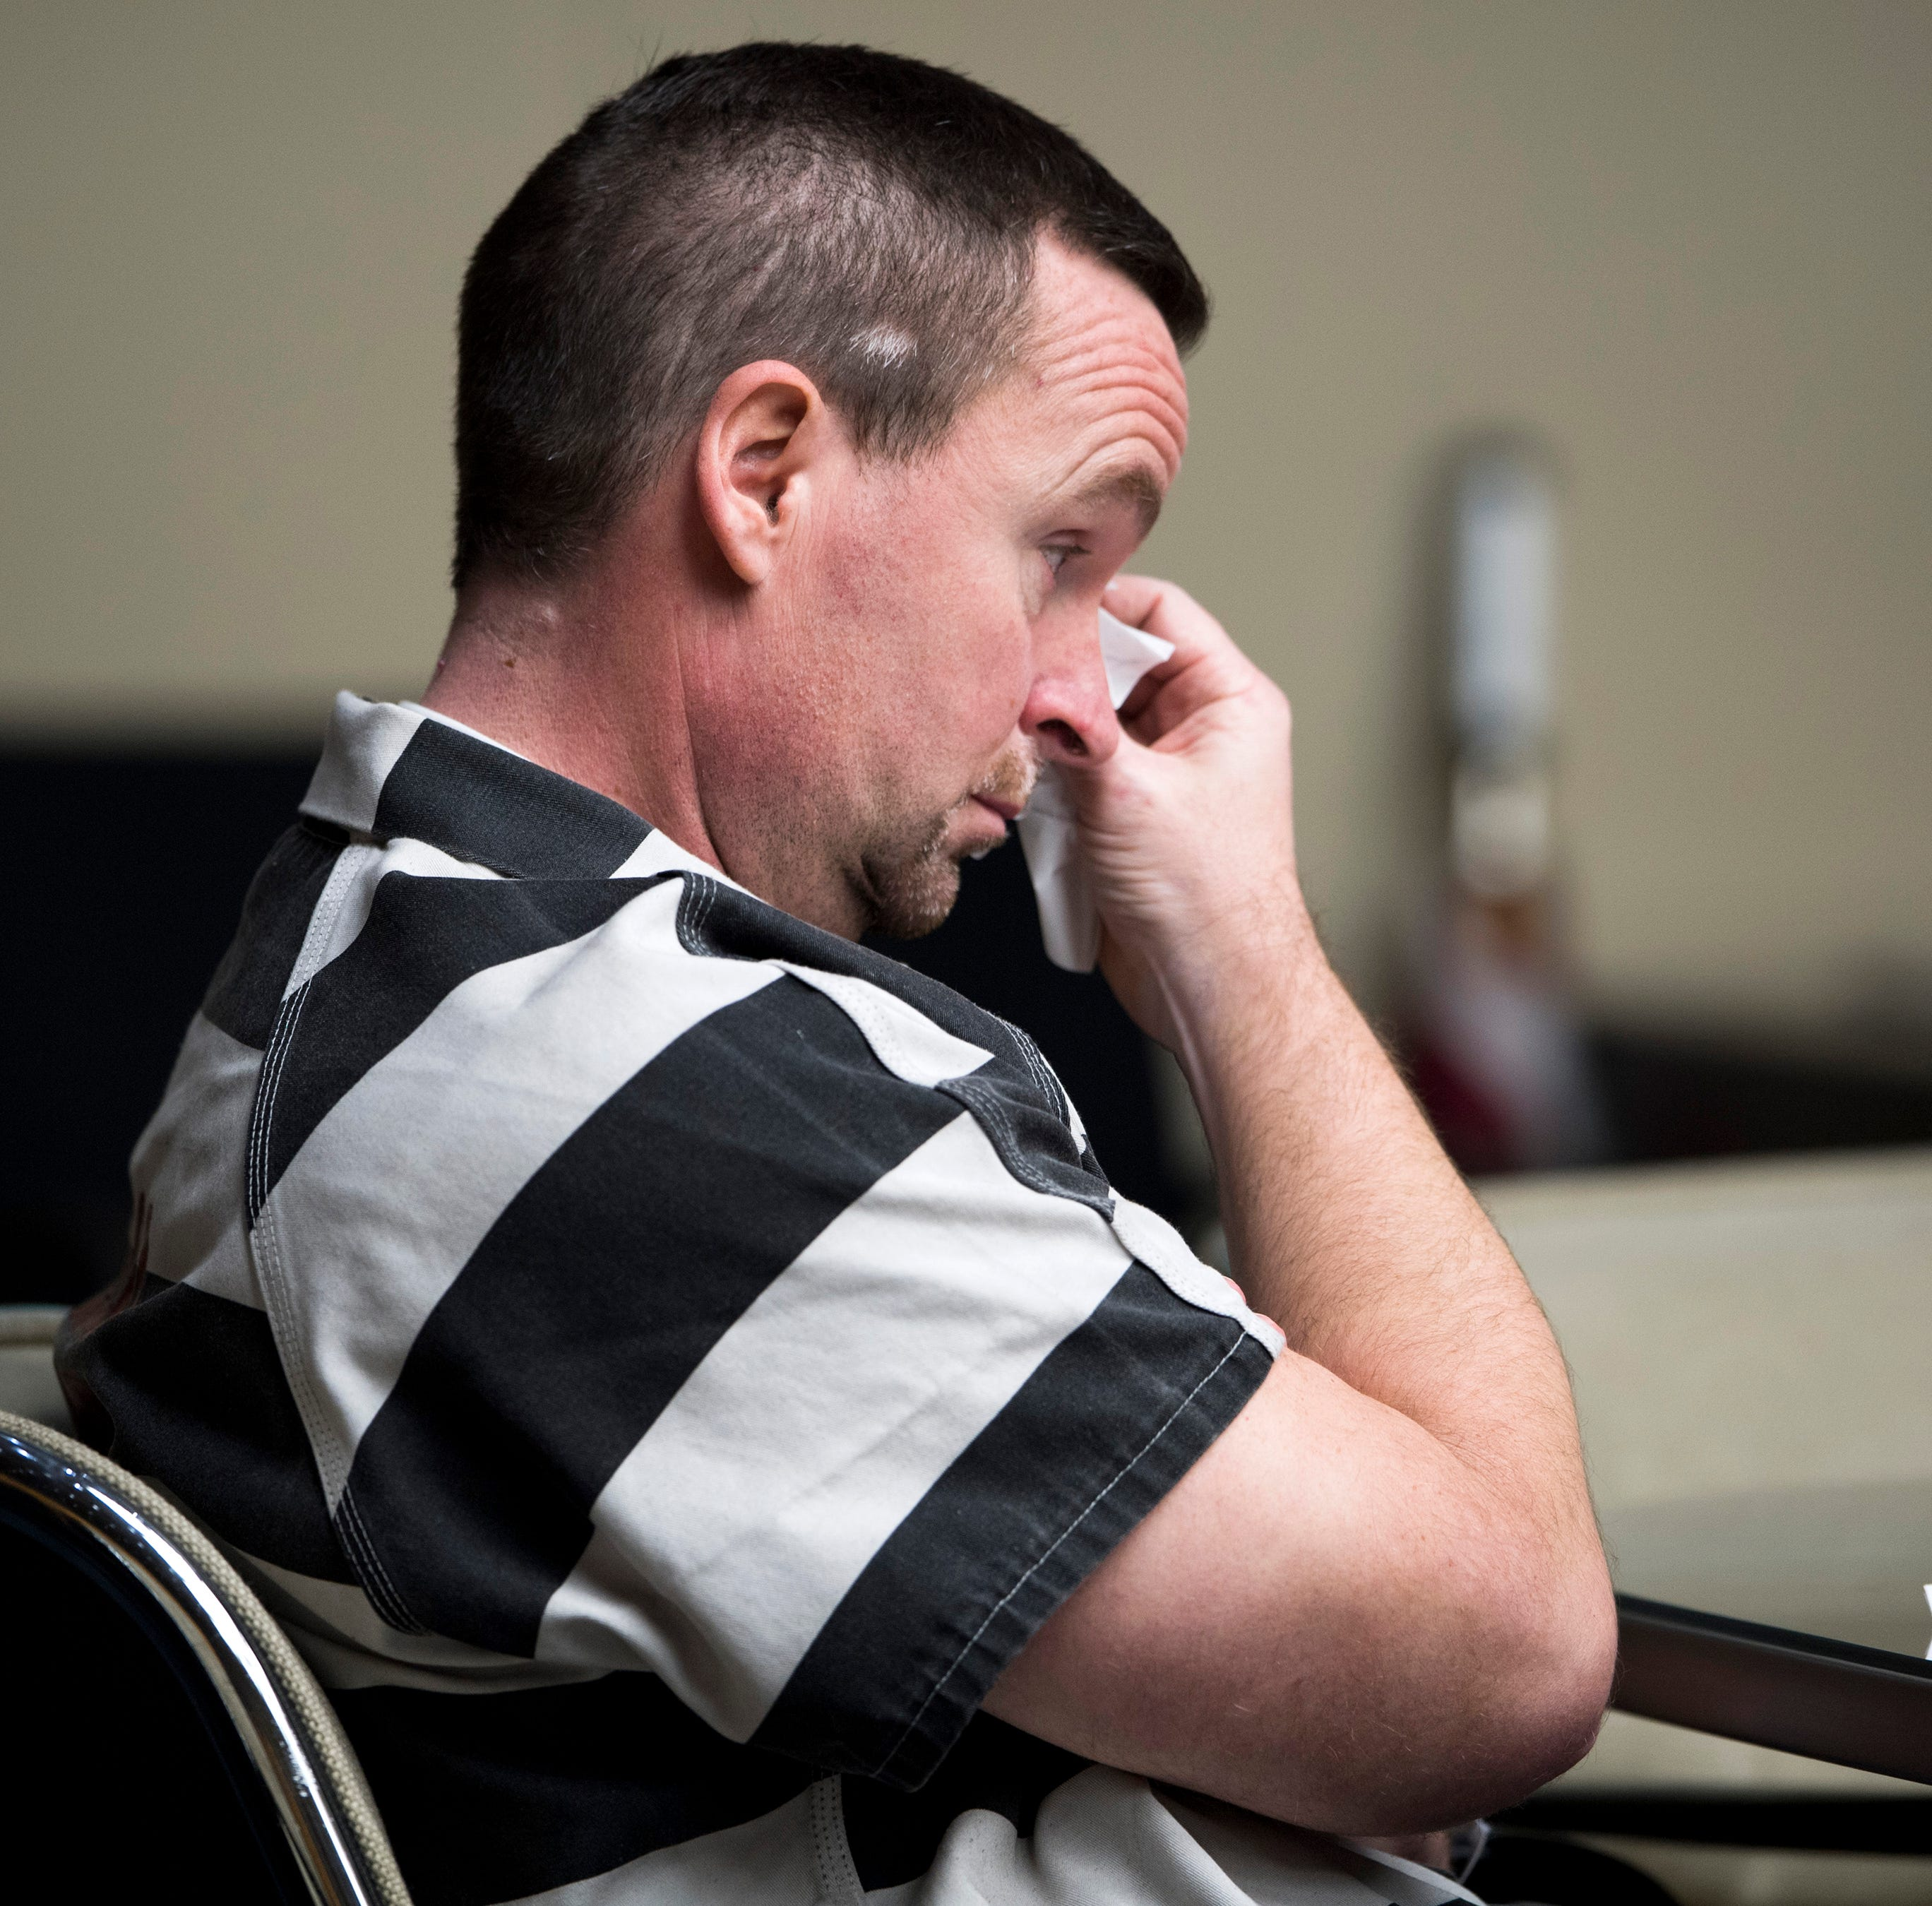 Former pastor sentenced to 12 years in prison for repeated rape of adopted daughter